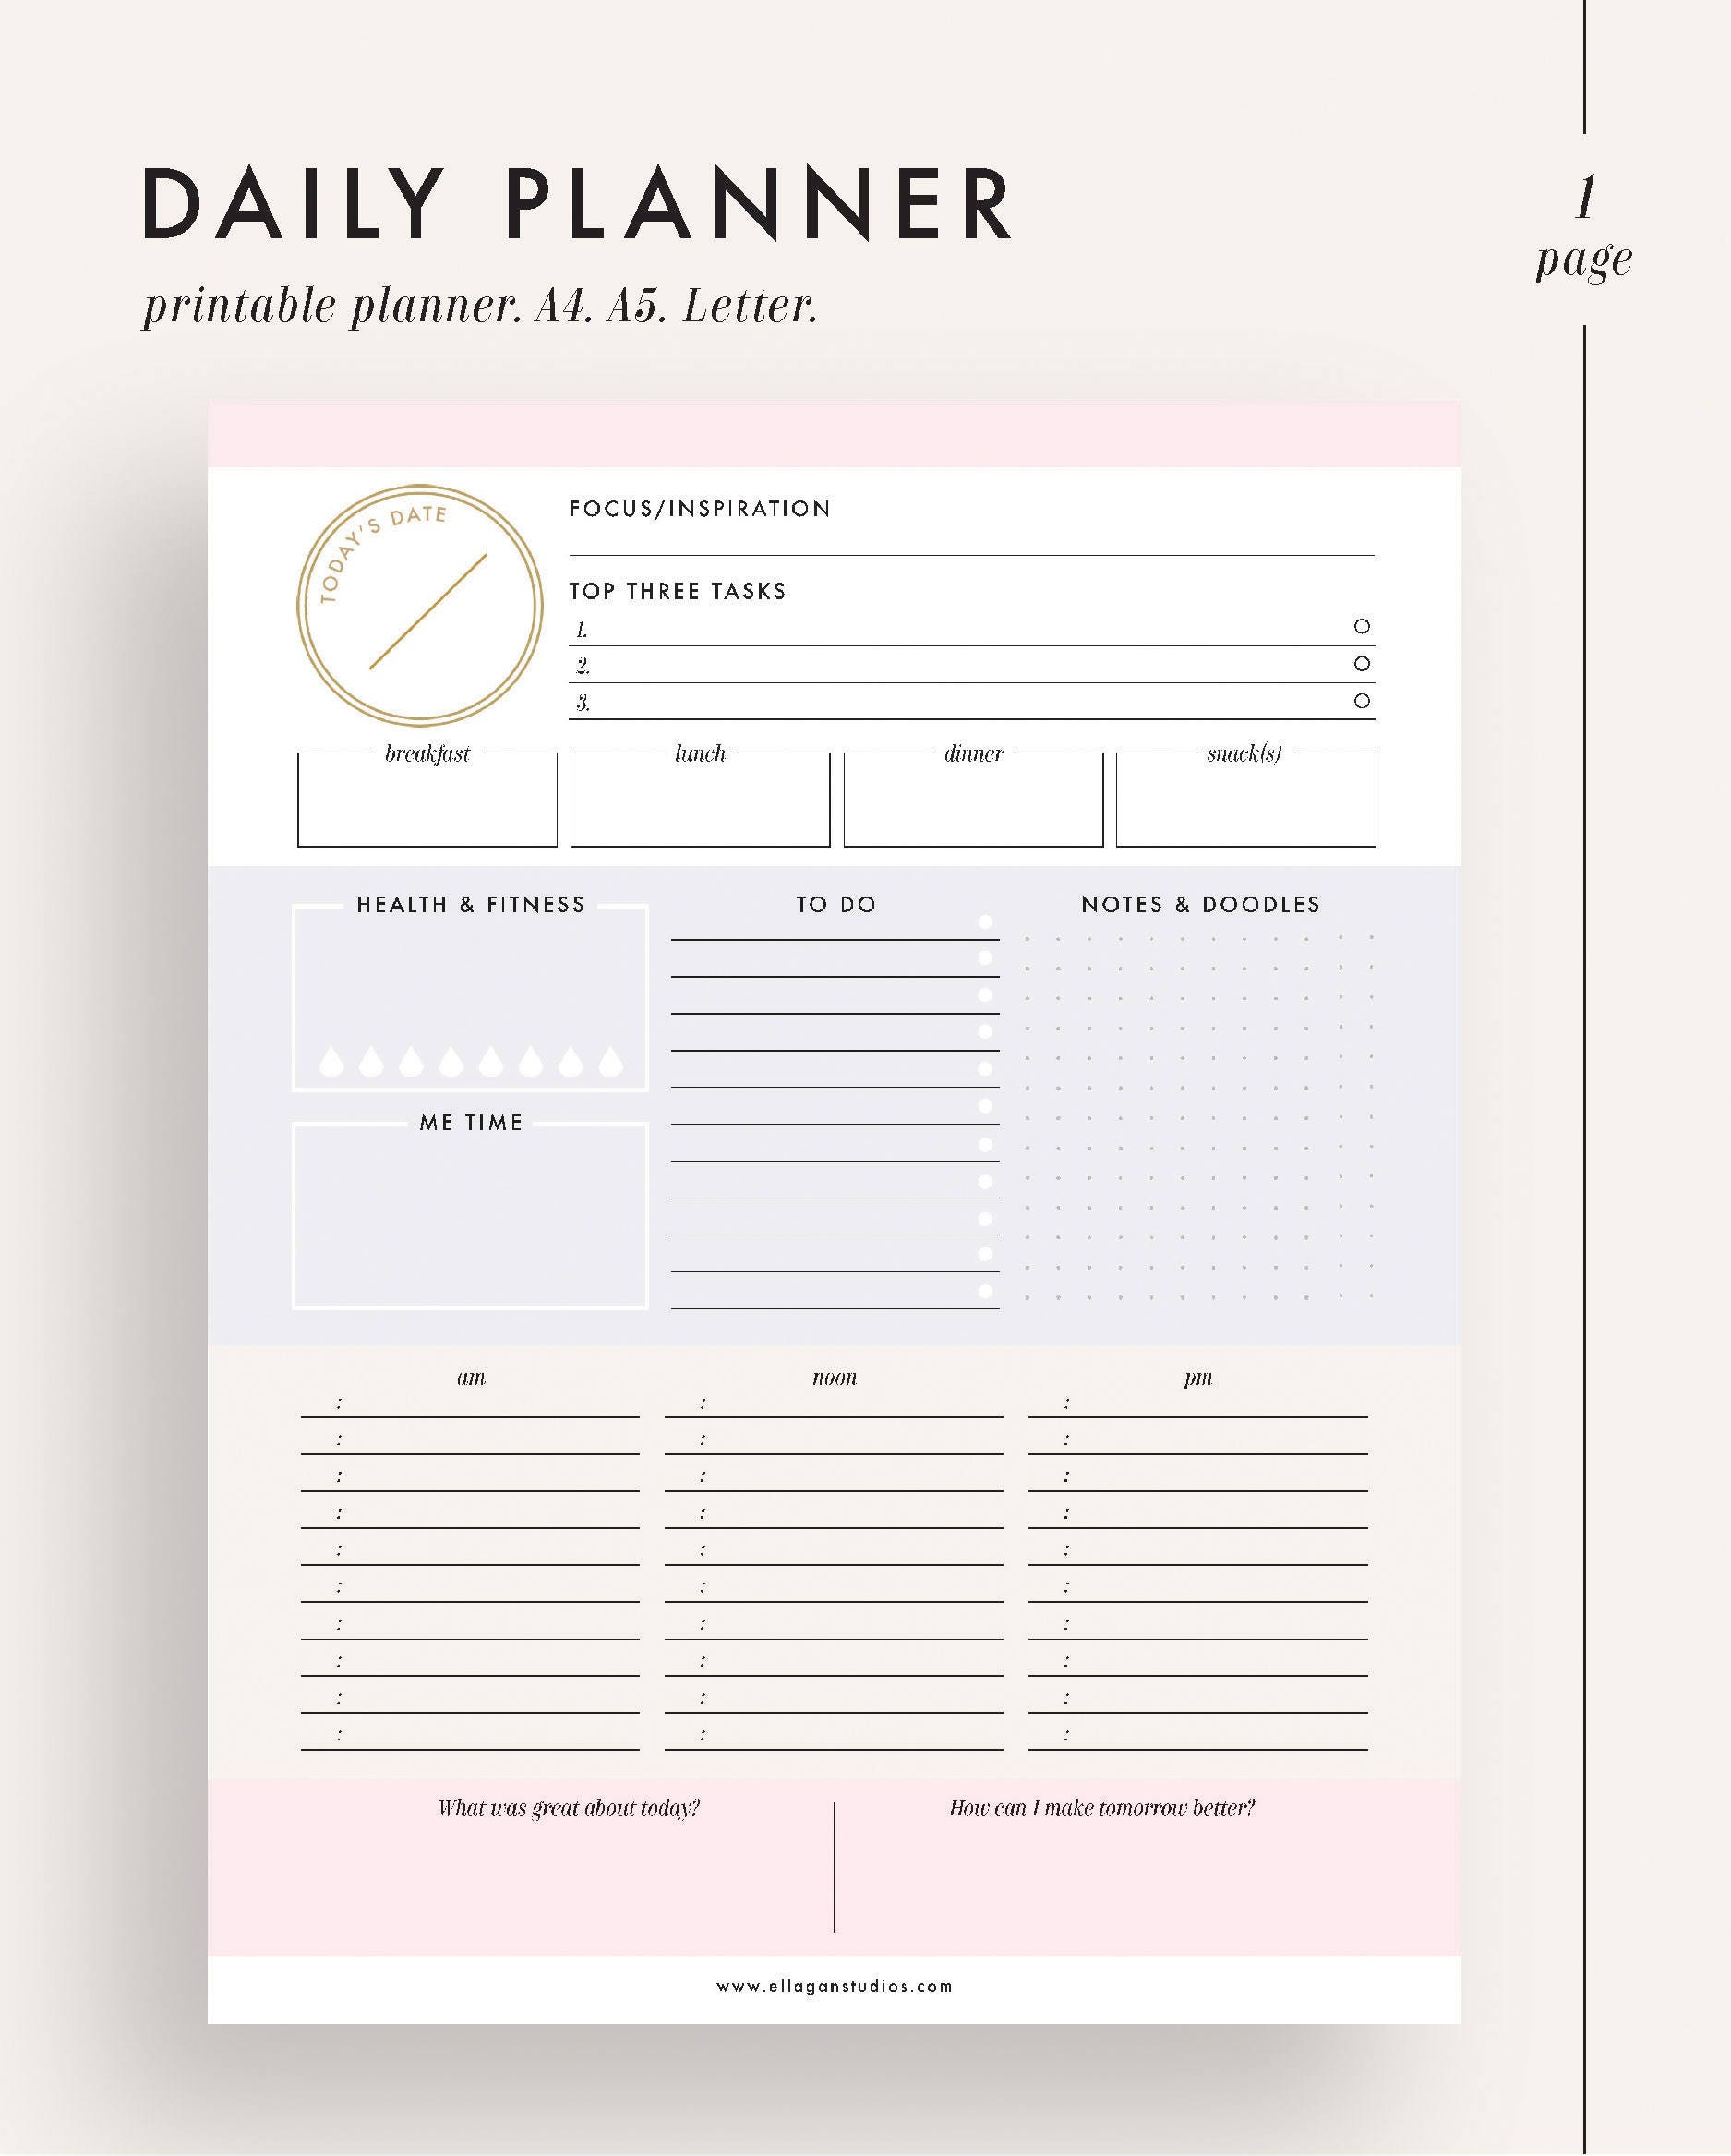 photograph relating to Daily Planner Printable known as Each day planner, printable planner, planner inserts, planner printable, working day planner, day by day planner add, every day timetable, day-to-day organizer